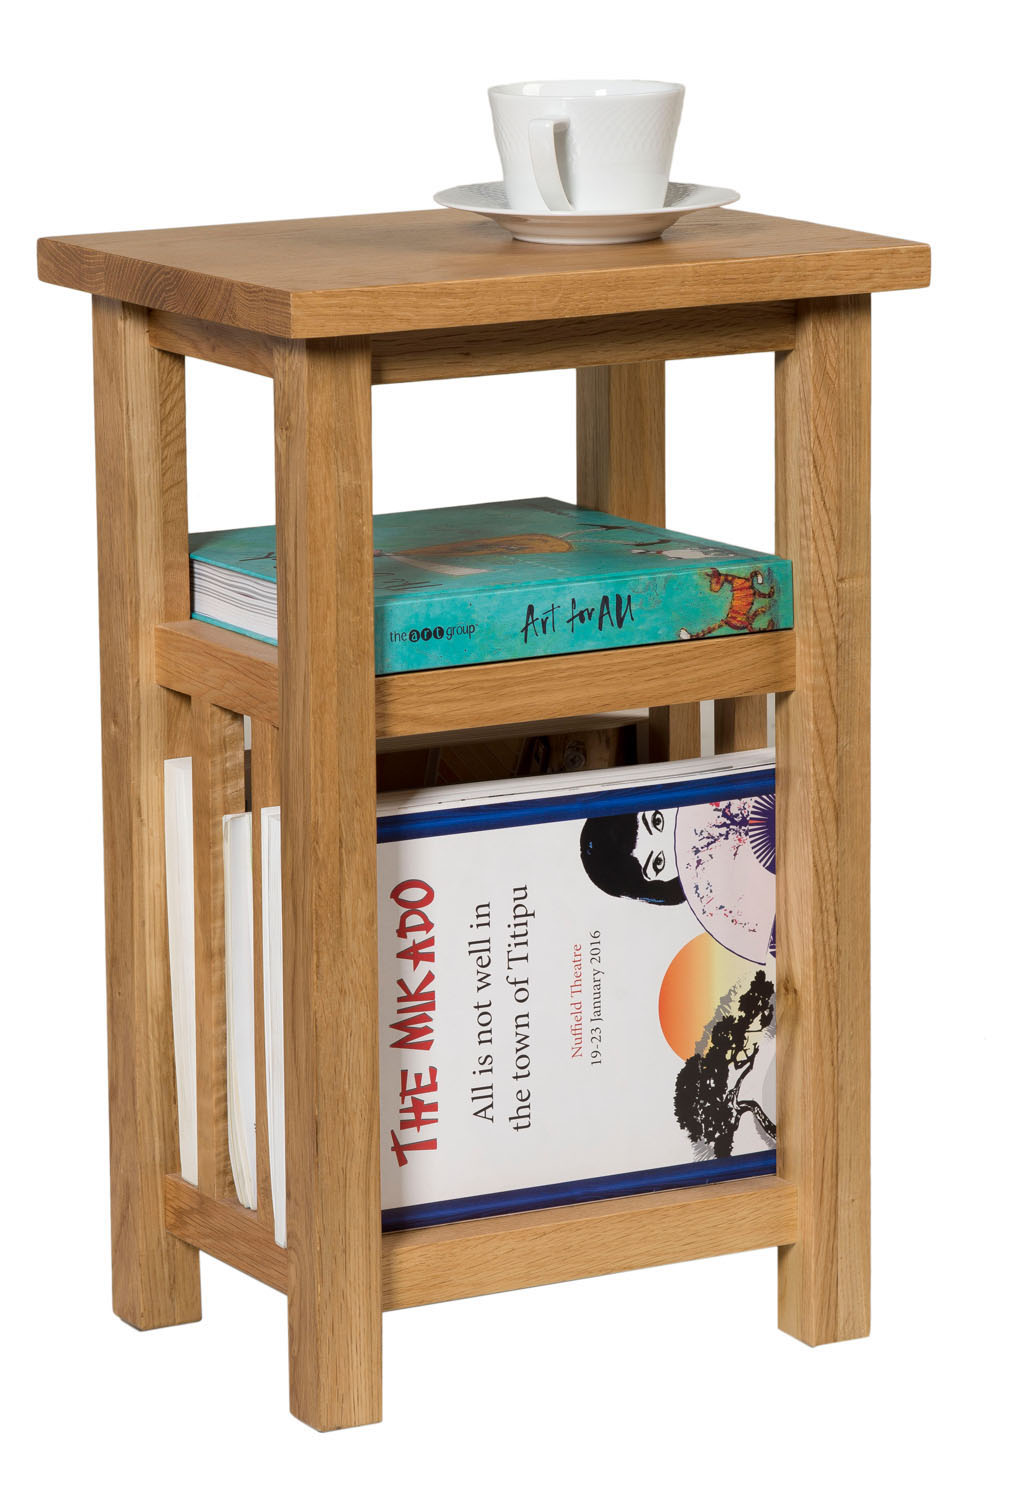 Small oak magazine rack side table wooden coffee lamp